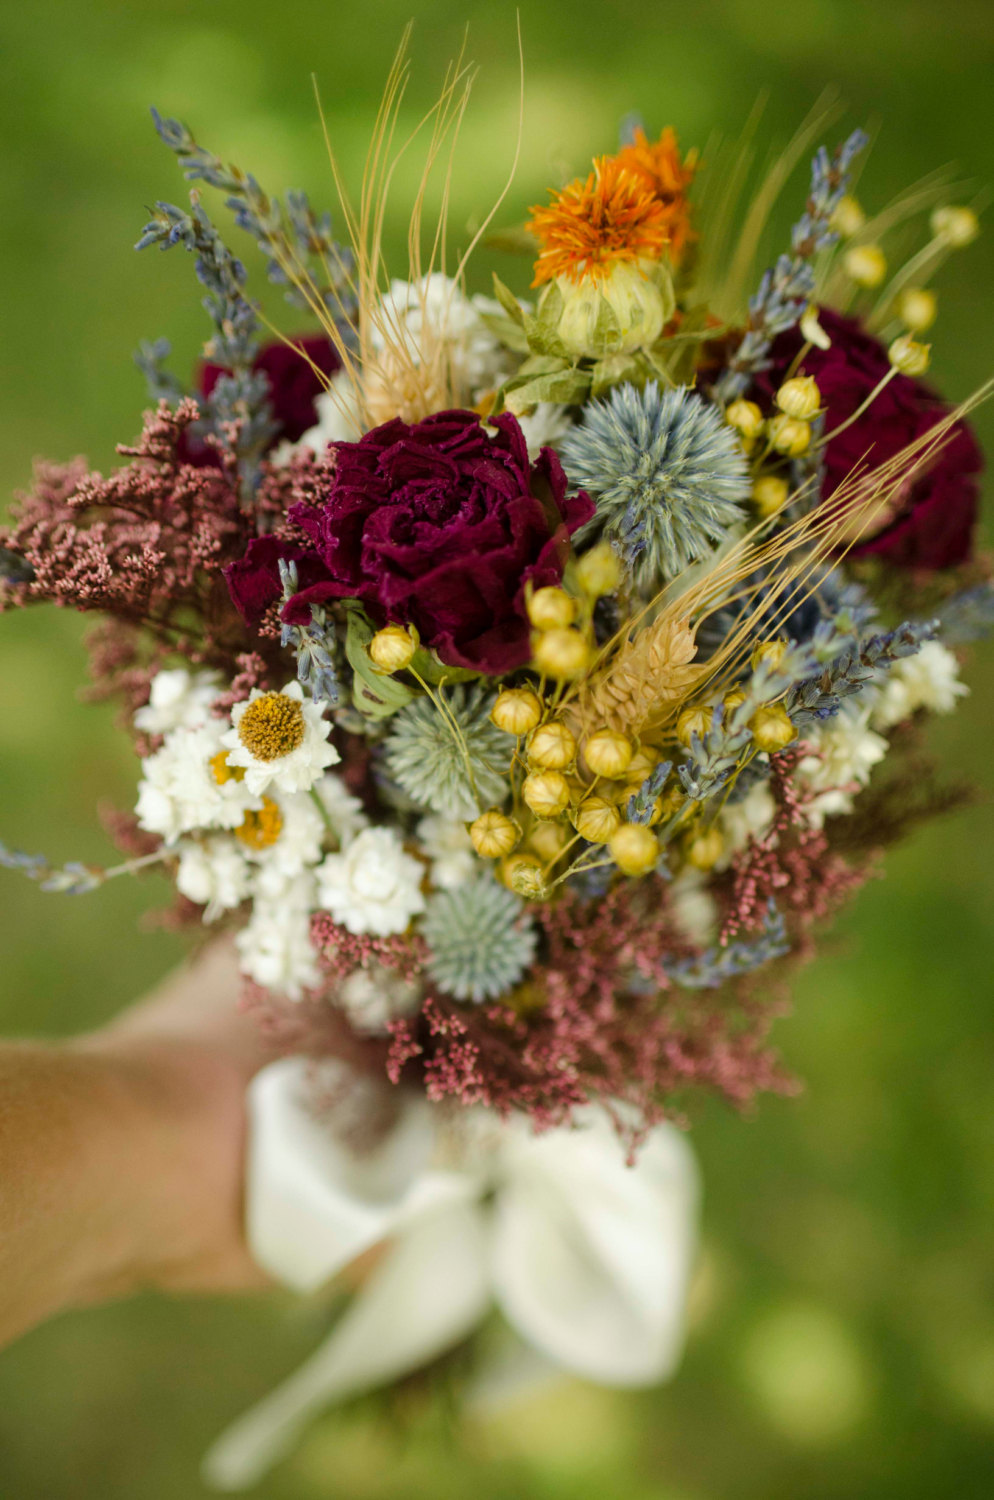 Dried flower bouquets for weddings? Why or why not?